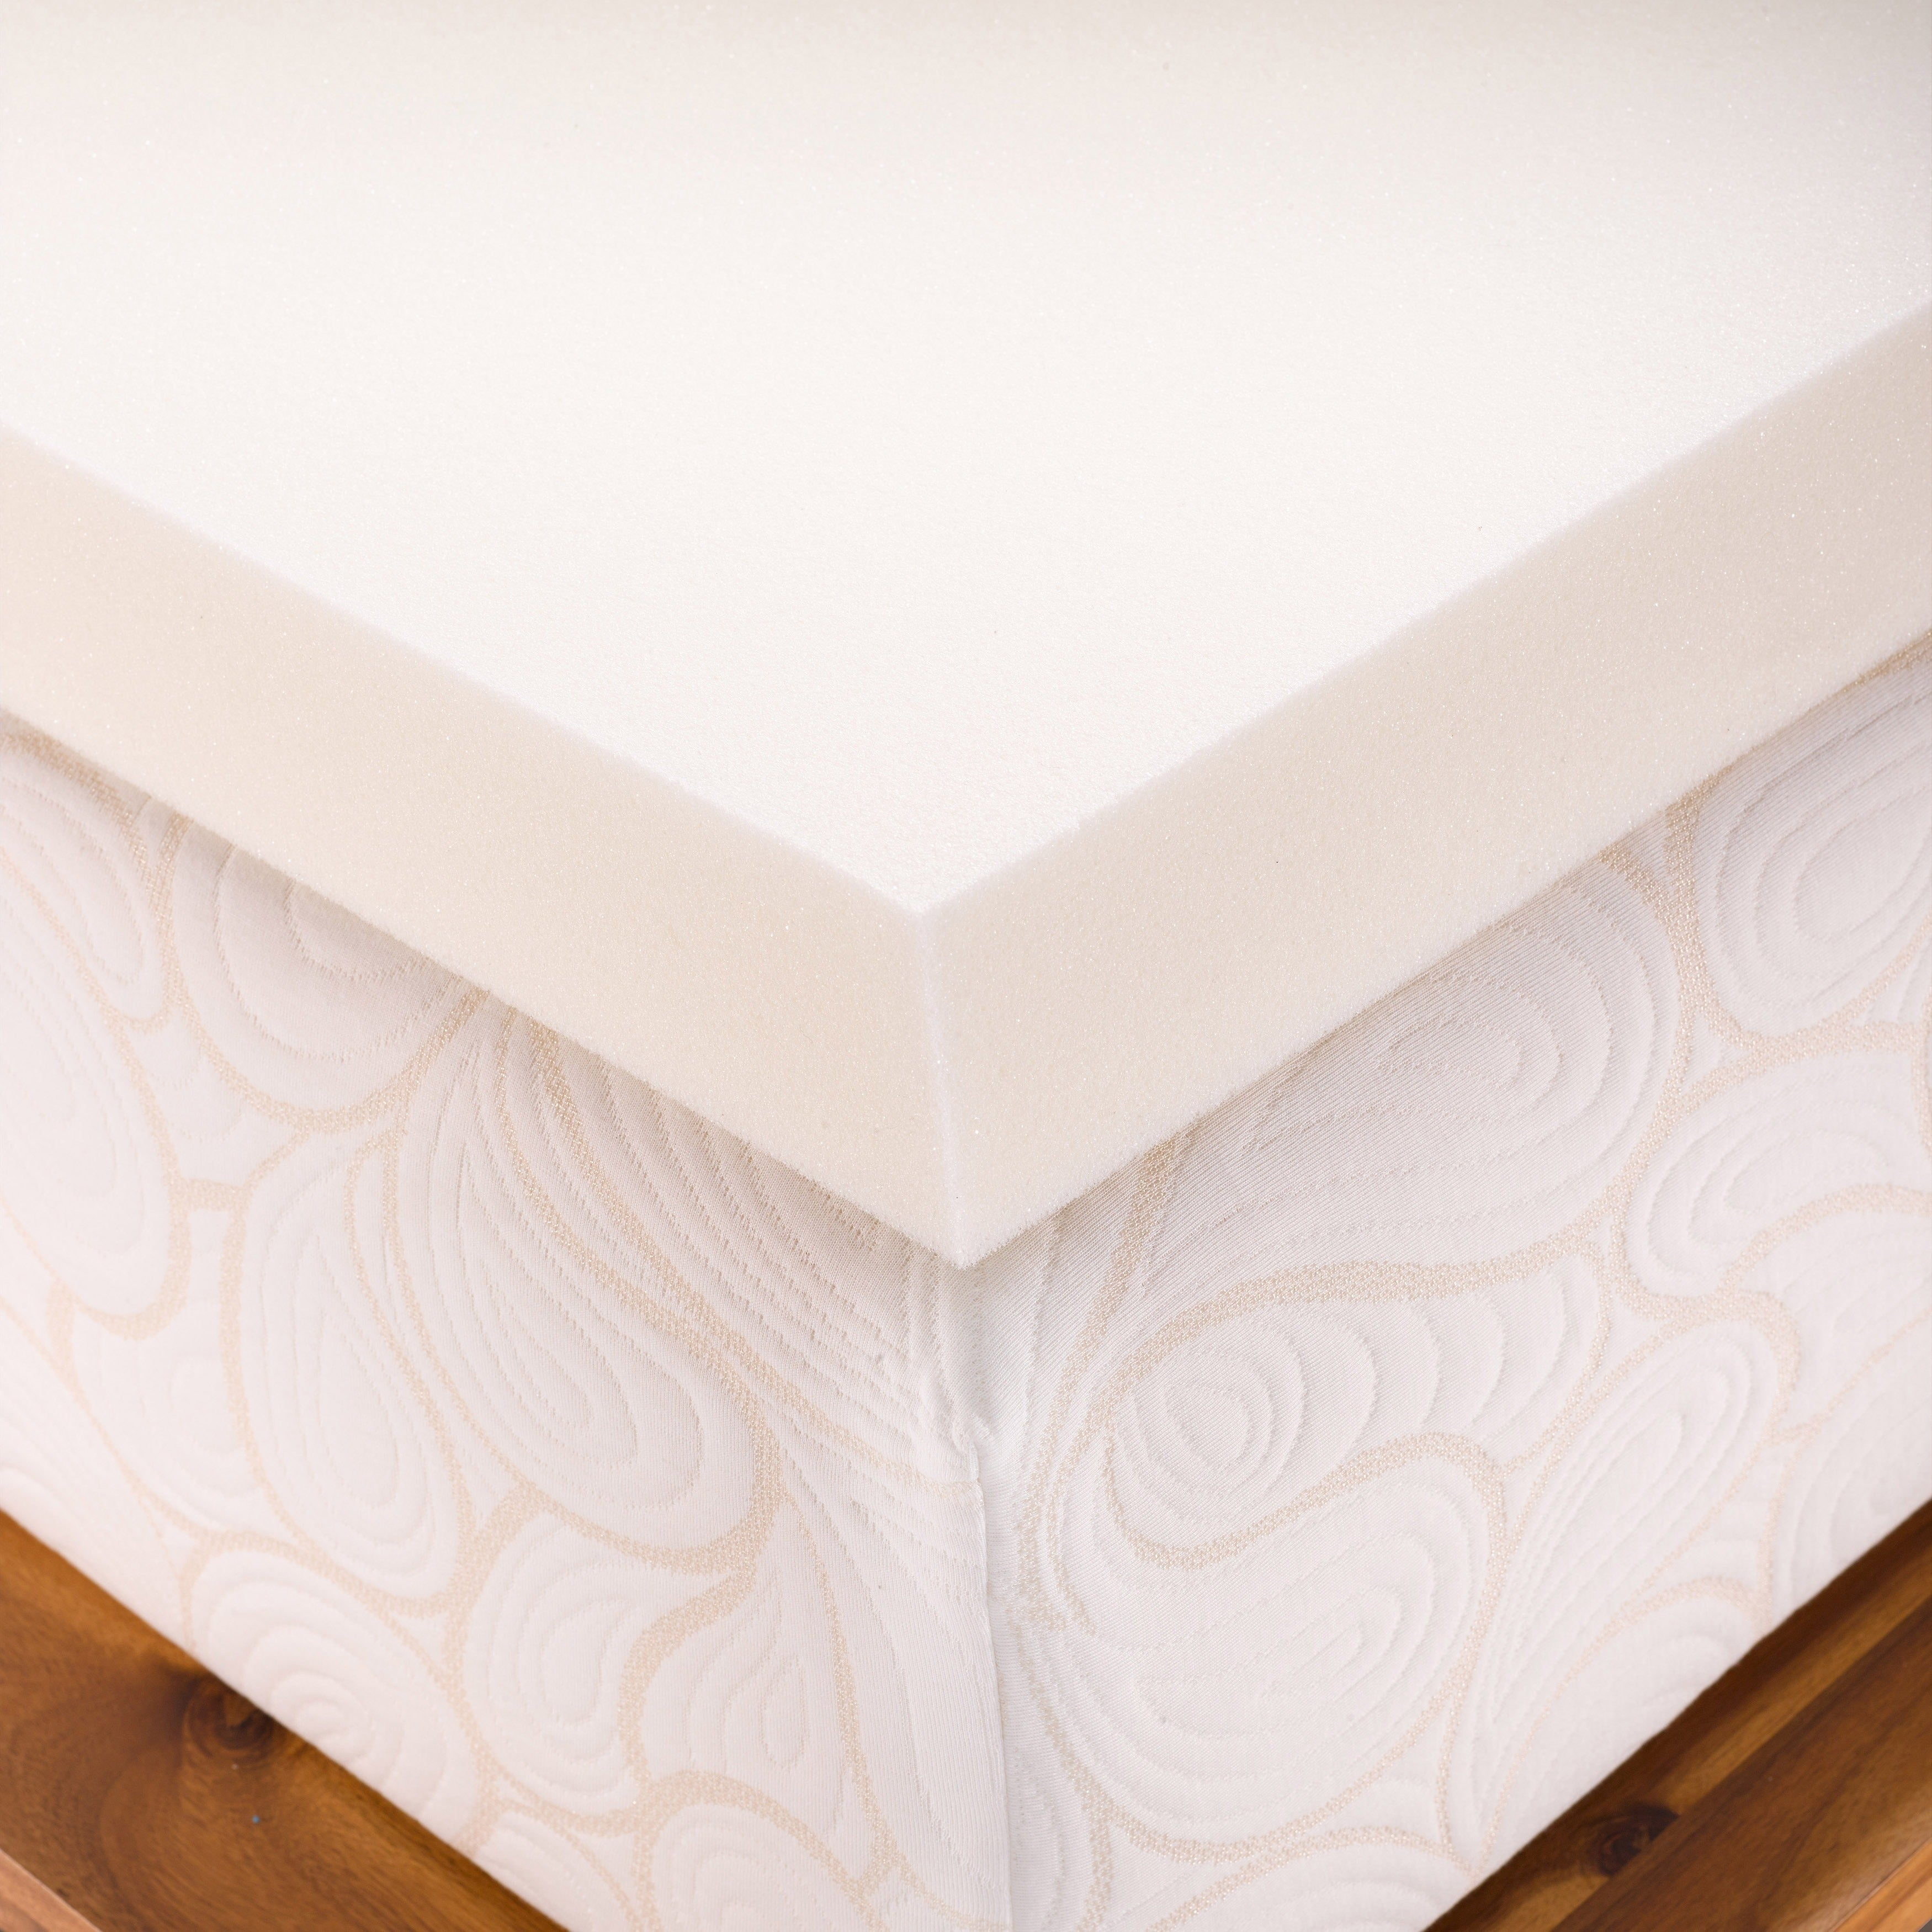 topper concept uncategorized and contour queen dreams hybrid with serta of imgid comfort ultimate memory pics foam unbelievable mattress inch styles